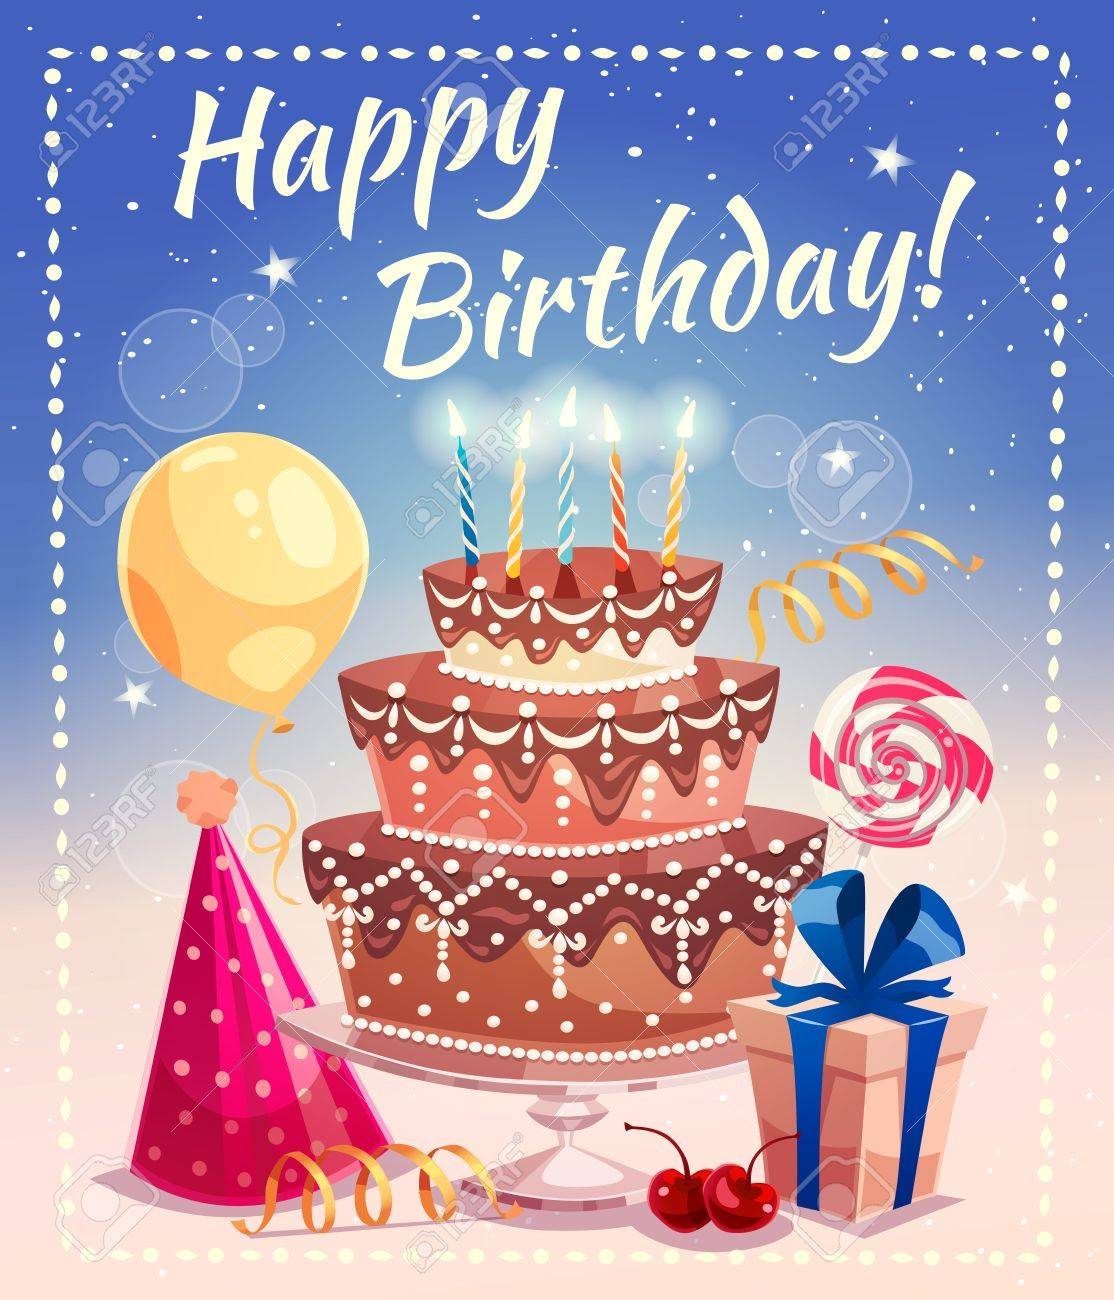 Happy Birthday Greeting Card With Big Cake Candles Gift Box Tied By Ribbon Air Balloon And